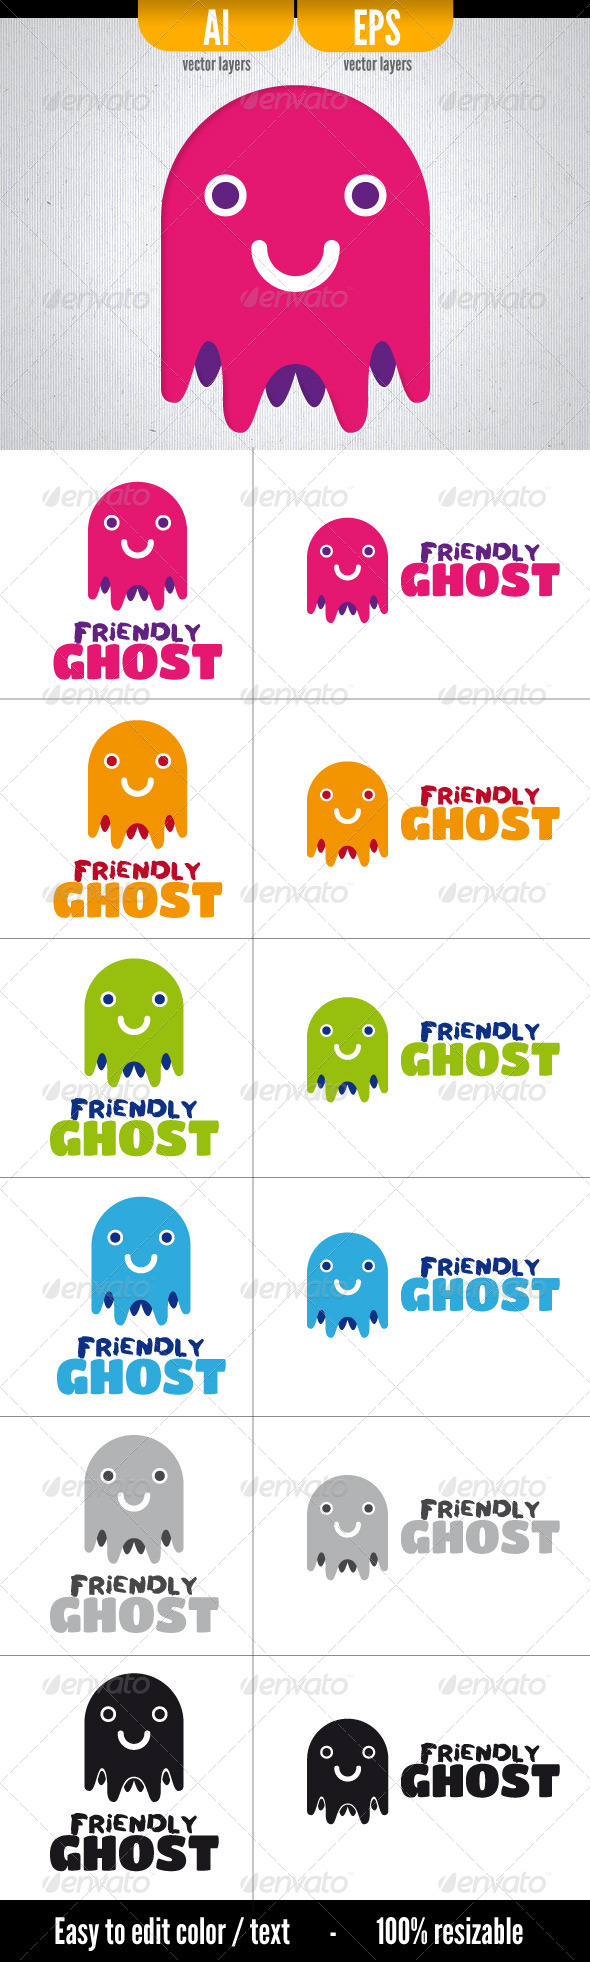 GraphicRiver Friendly Ghost 4310939